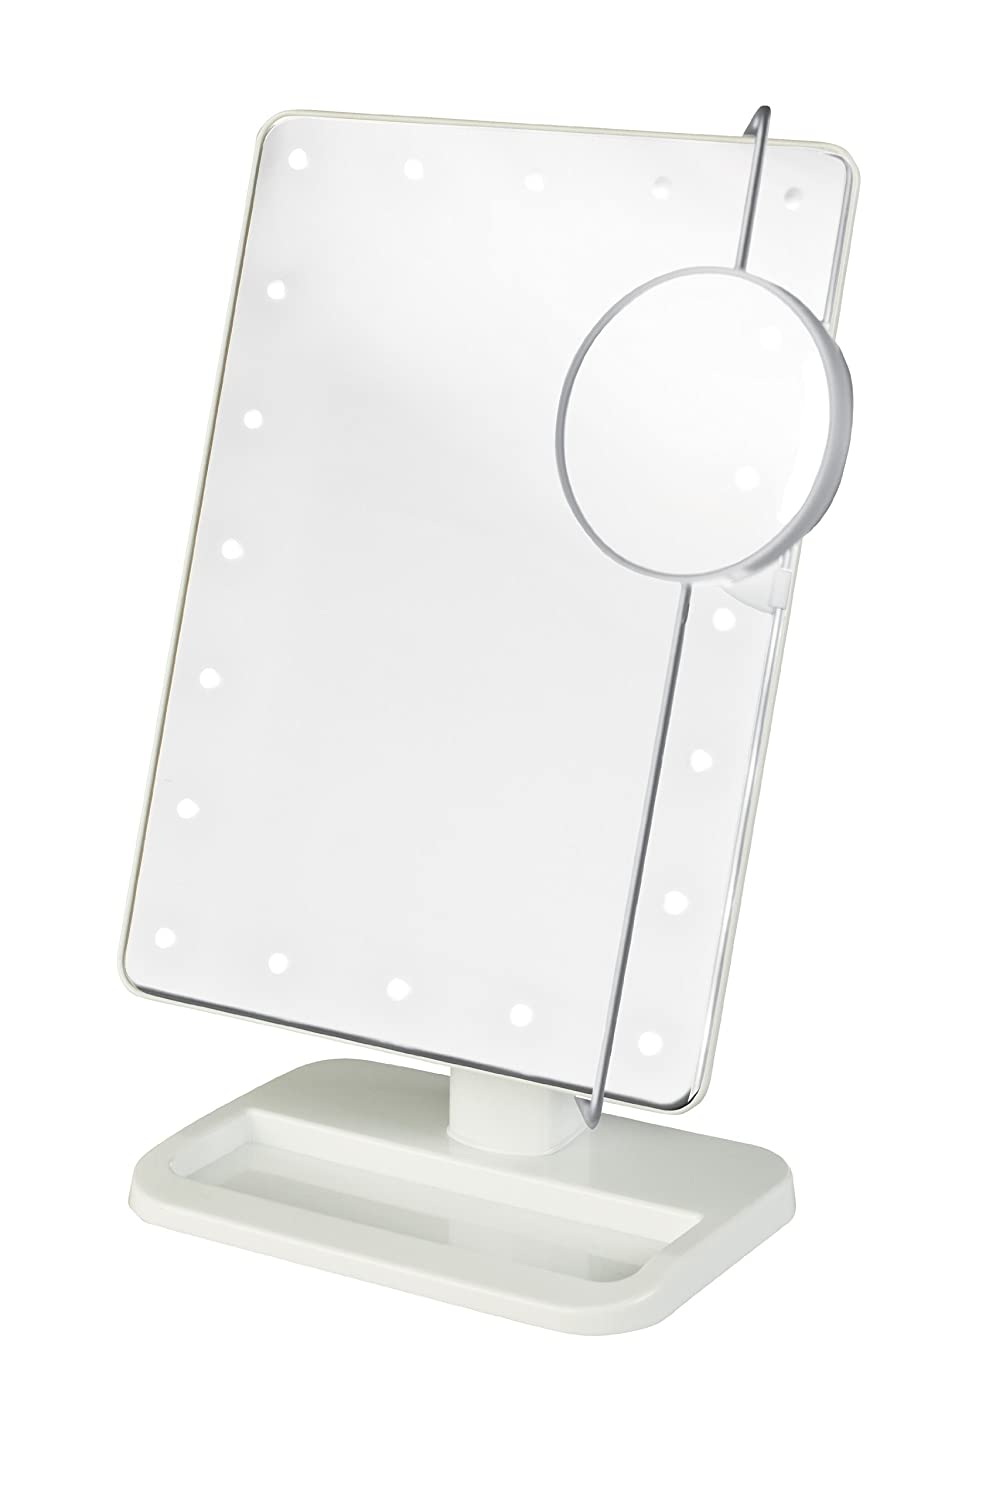 Lighted Vanity Top Mirror : LED Lighted Makeup Vanity Mirrors Table Decorative Portable Bathroom Accessories eBay